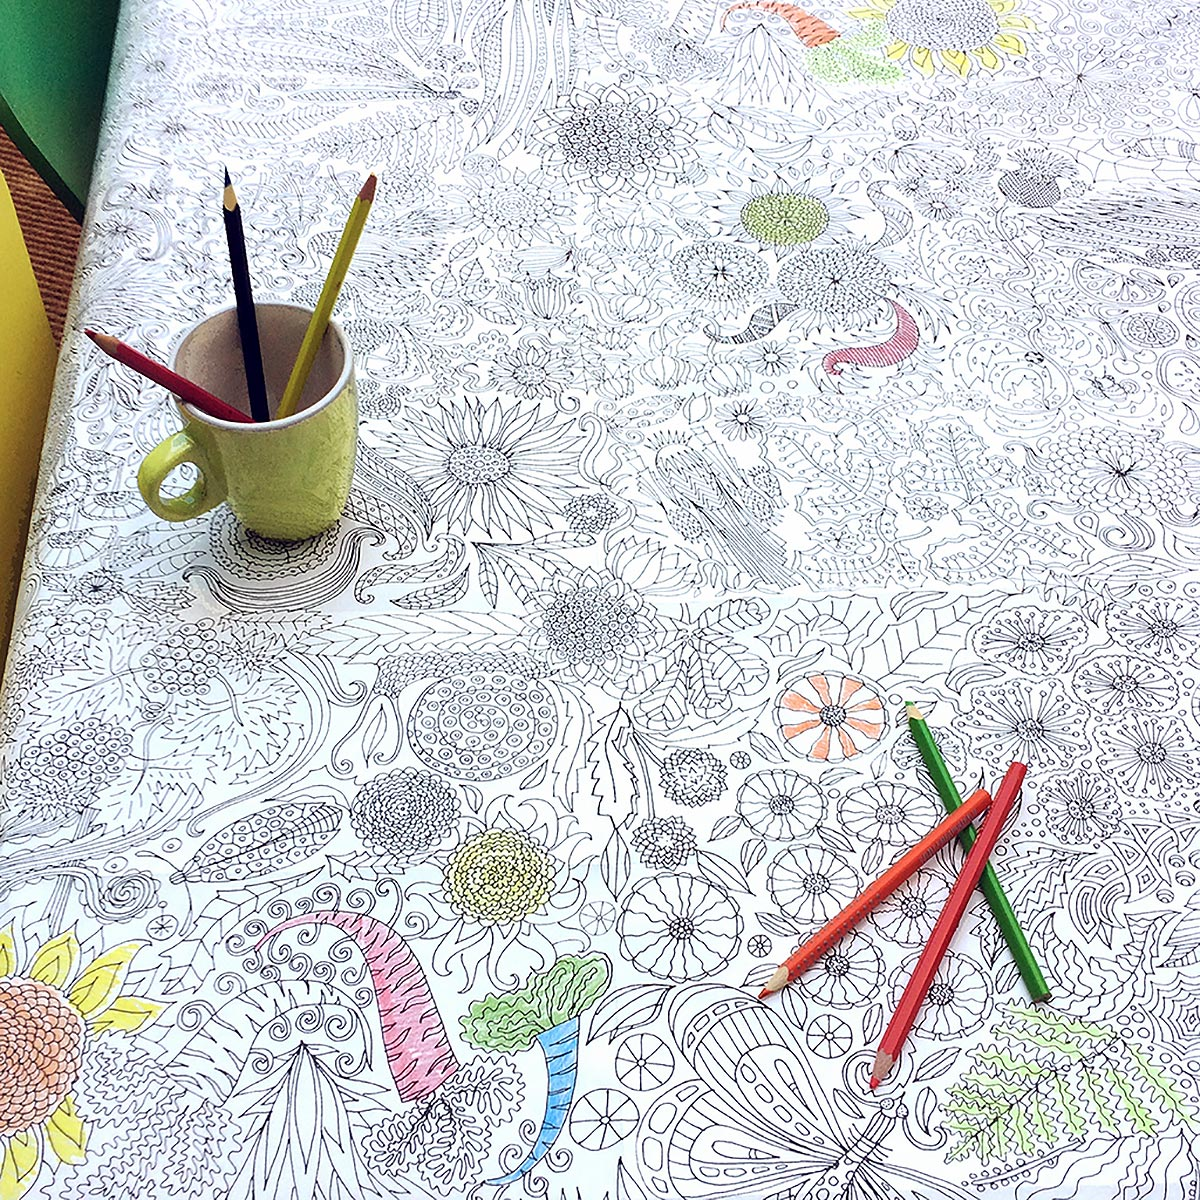 tablecloth partially coloured in with crayons in mug